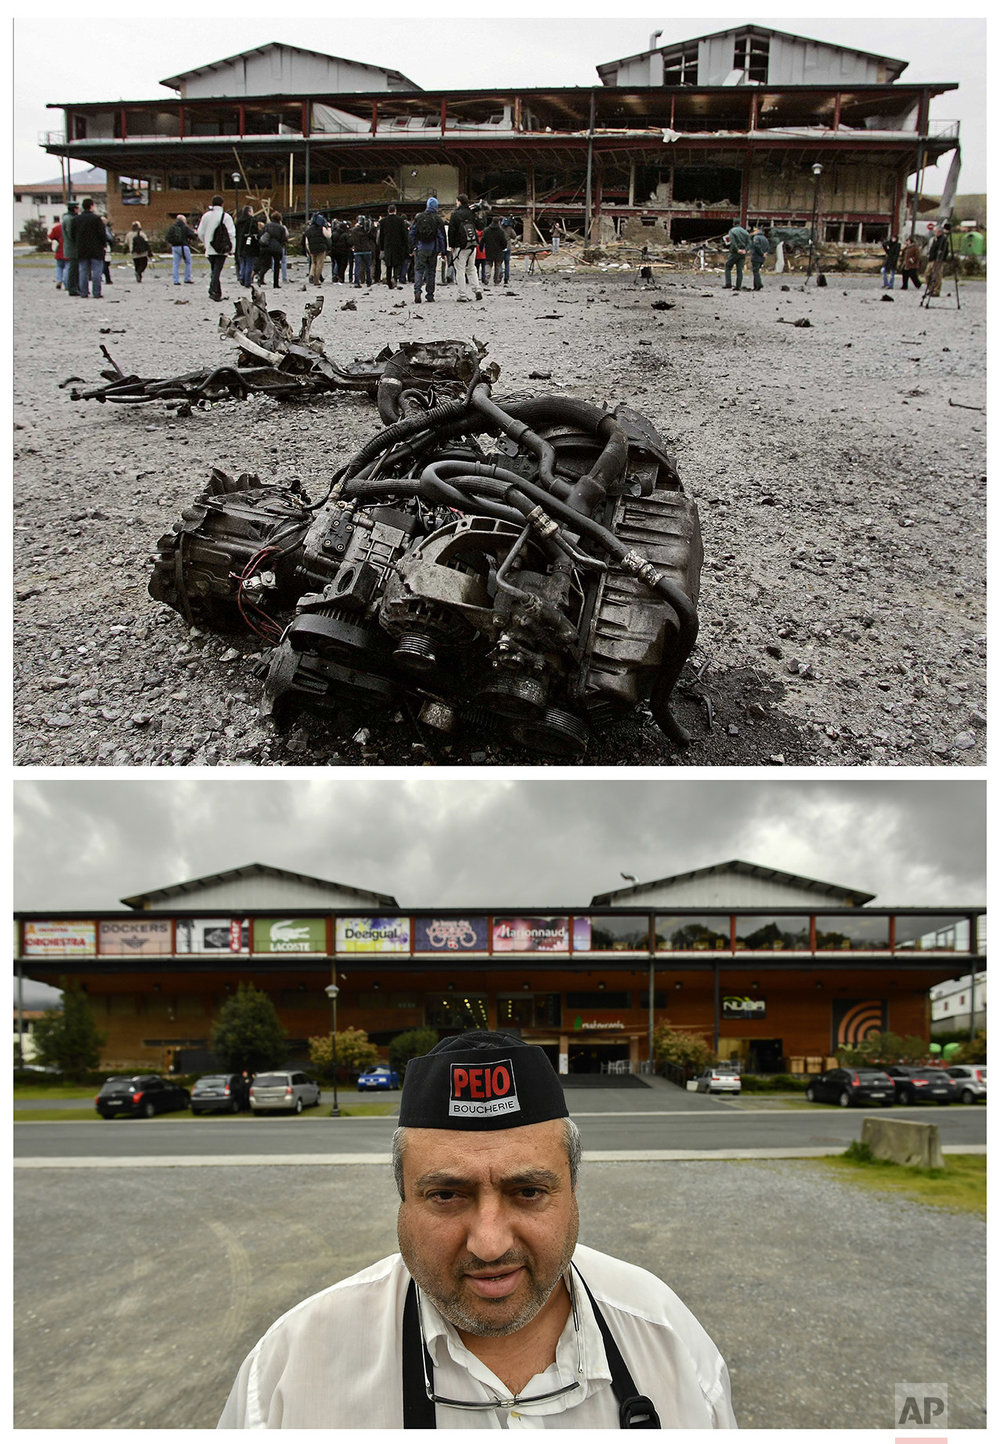 In this two photo combo, the wreckage of a car lying on the ground after a car bomb exploded destroying a shopping center, following a warning telephone call made in the name of the armed separatist group ETA in Feb. 15, 2006, in Urdax, northern Spain, near the border with France, top, and Jose Mari, 51, a worker of the shopping center destroyed by the explosion posing for photographer on April 4, 2017 at the same place. (AP Photo/Alvaro Barrientos)